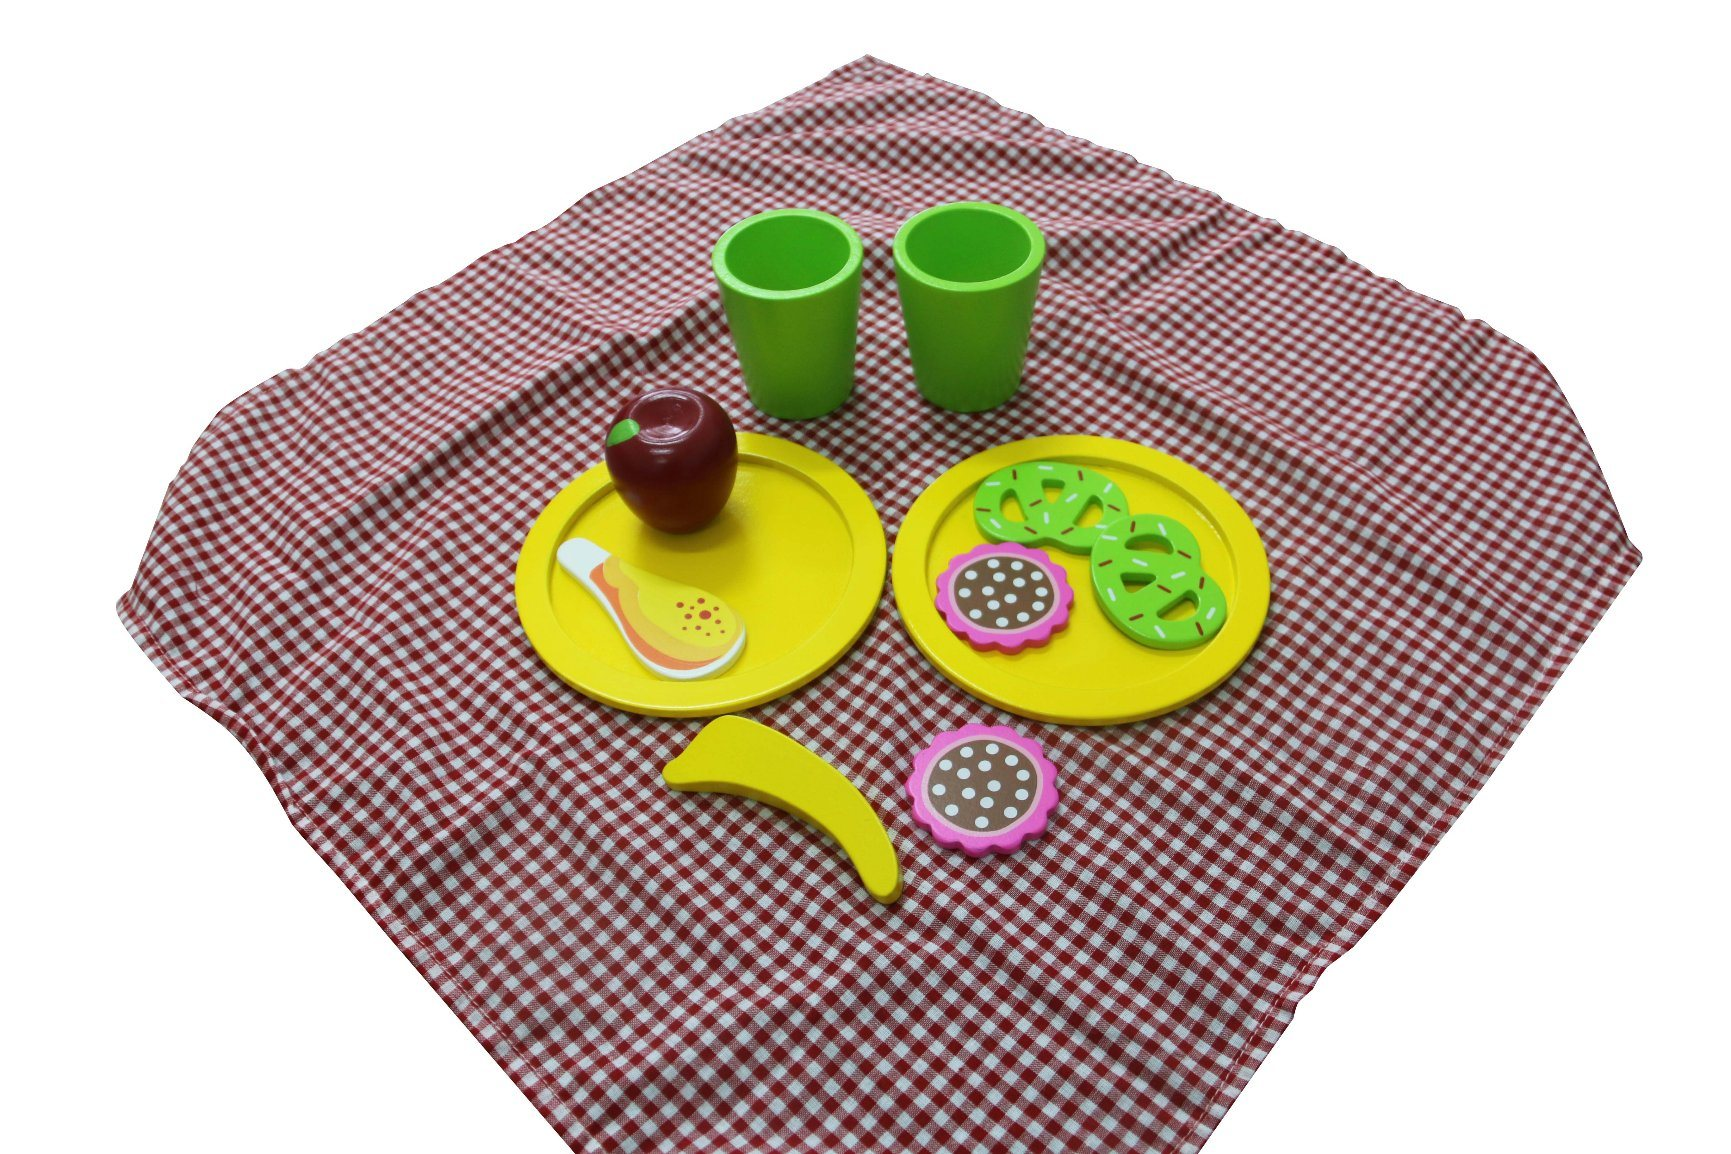 12PCS Wooden Picnic Set Toy for Kids and Children